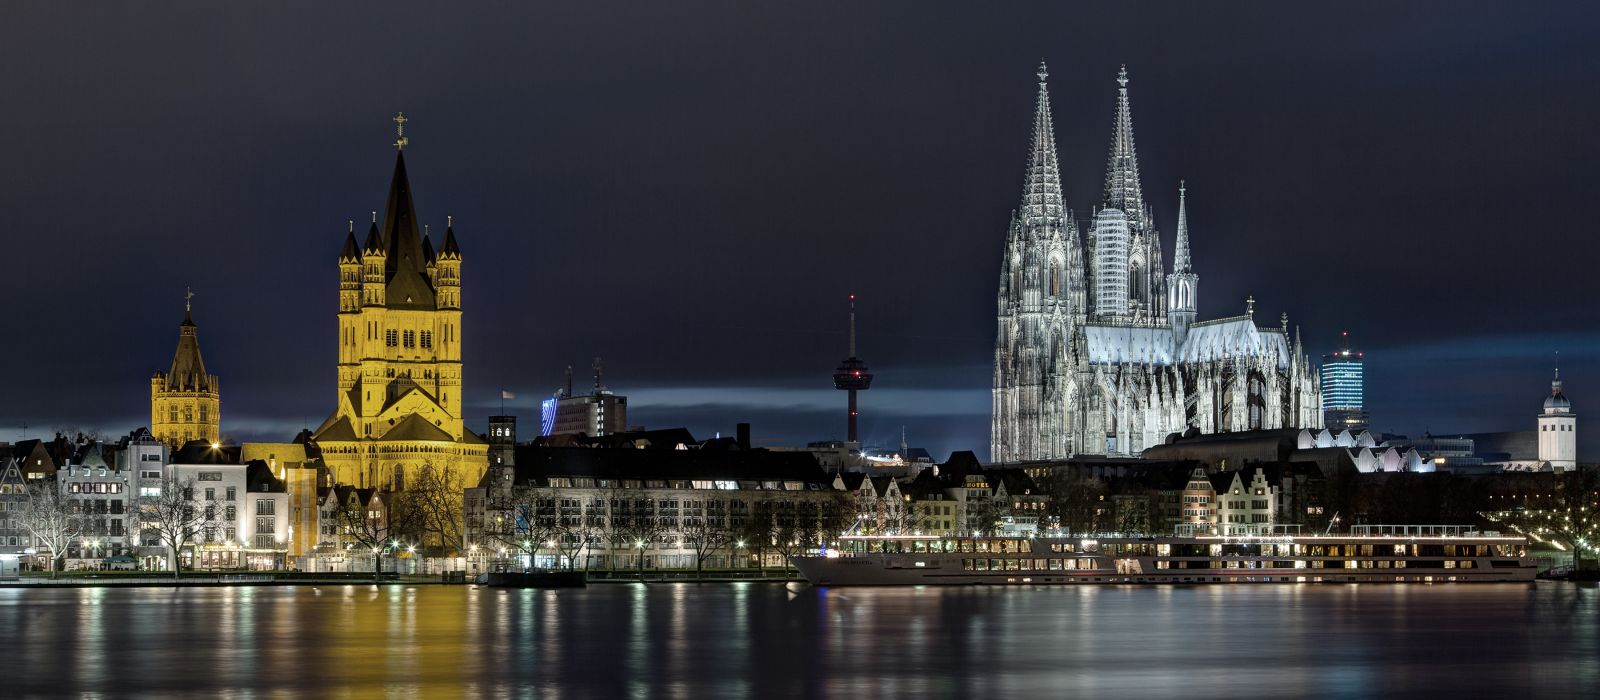 Illuminated buildings and cologne cathedral by rhine river in city at night, Germany, Europe